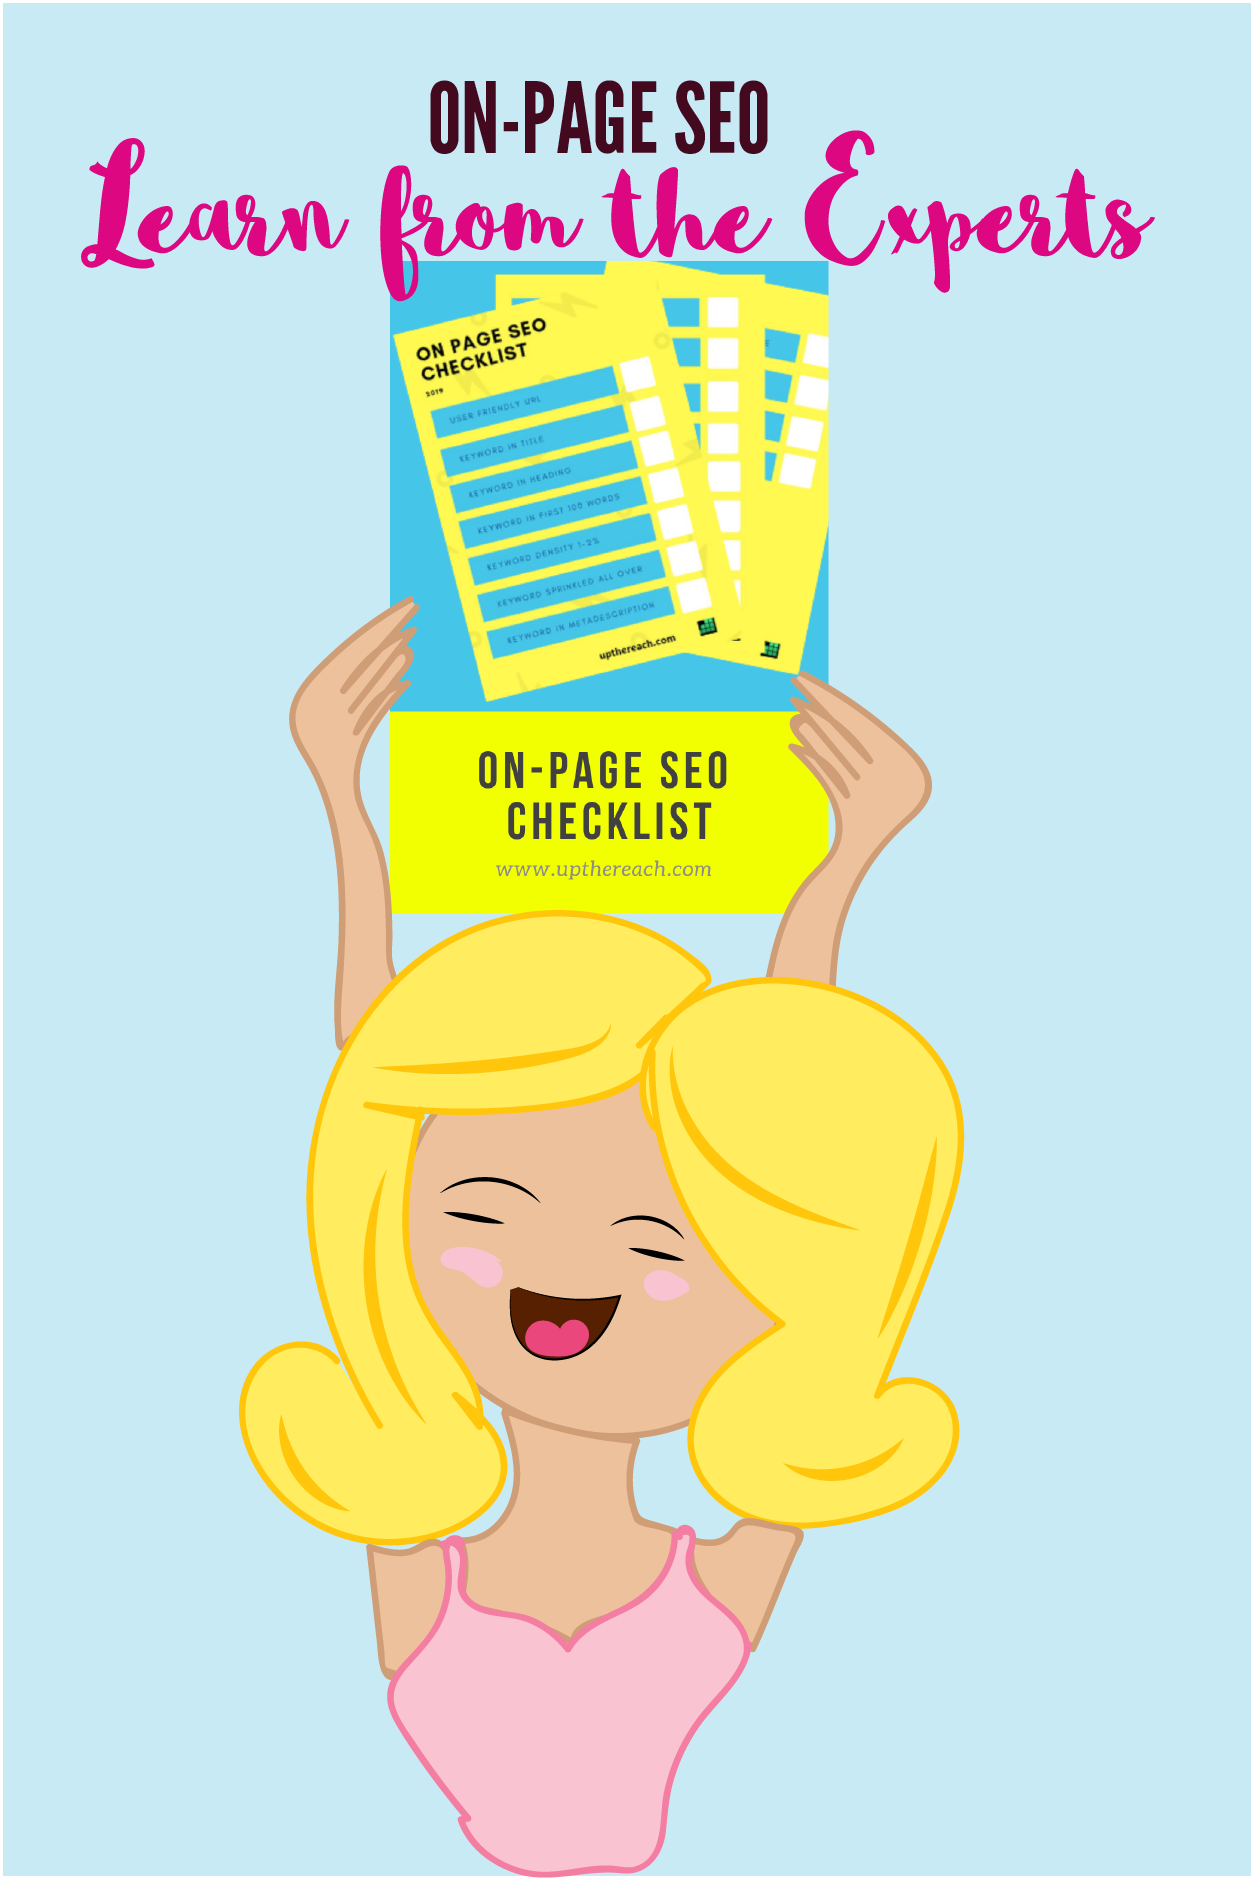 On-Page SEO Guide for 2019 (Checklist included) - Writers Guild - Medium